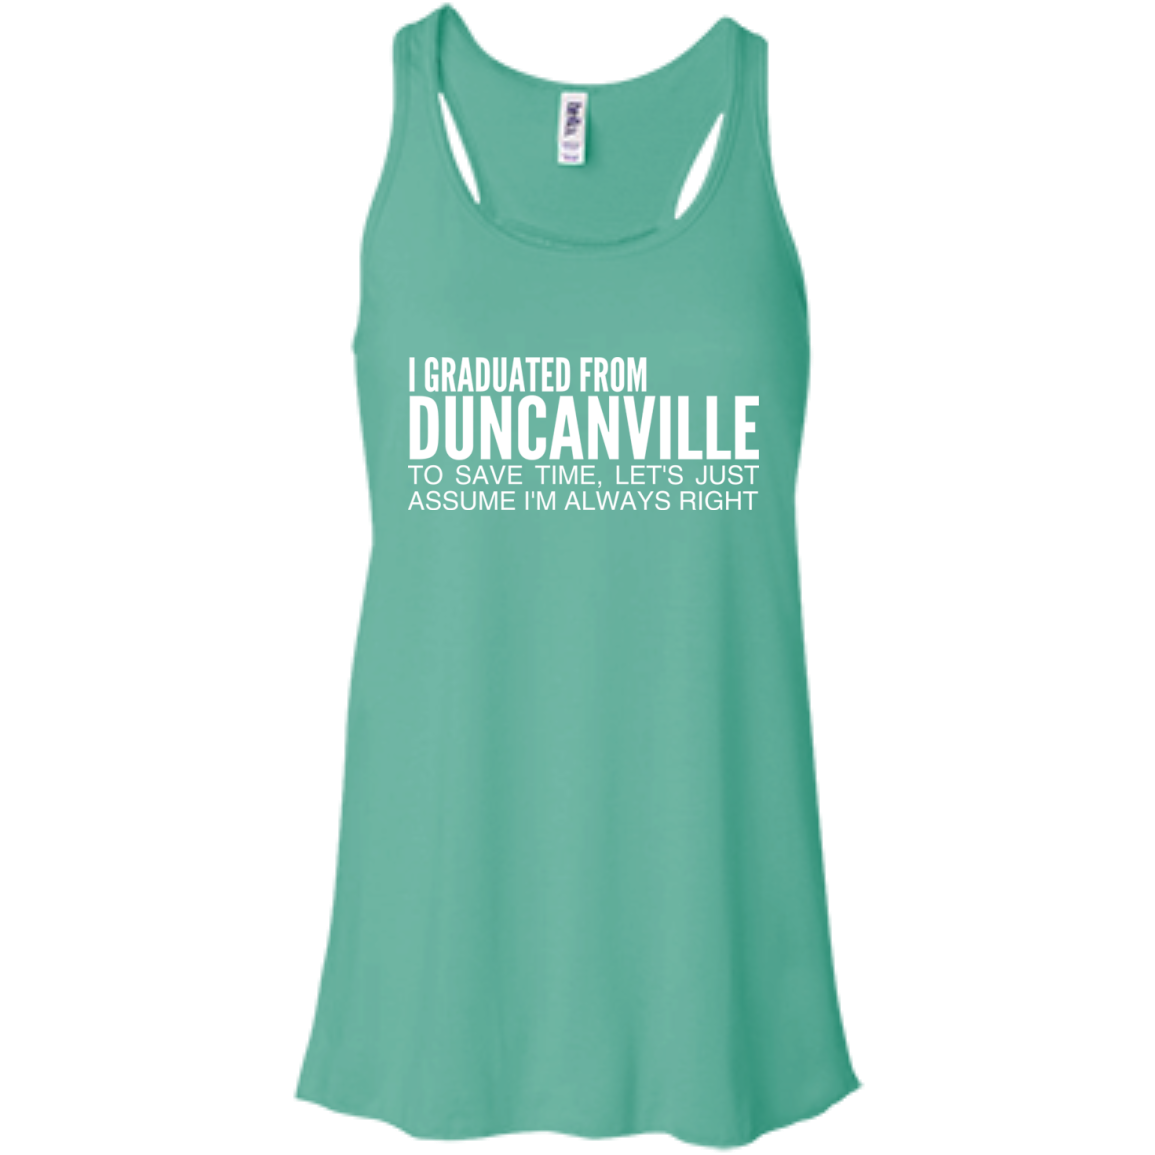 I Graduated From Duncanville To Save Time Lets Just Assume Im Always Right Flowy Racerback Tanks